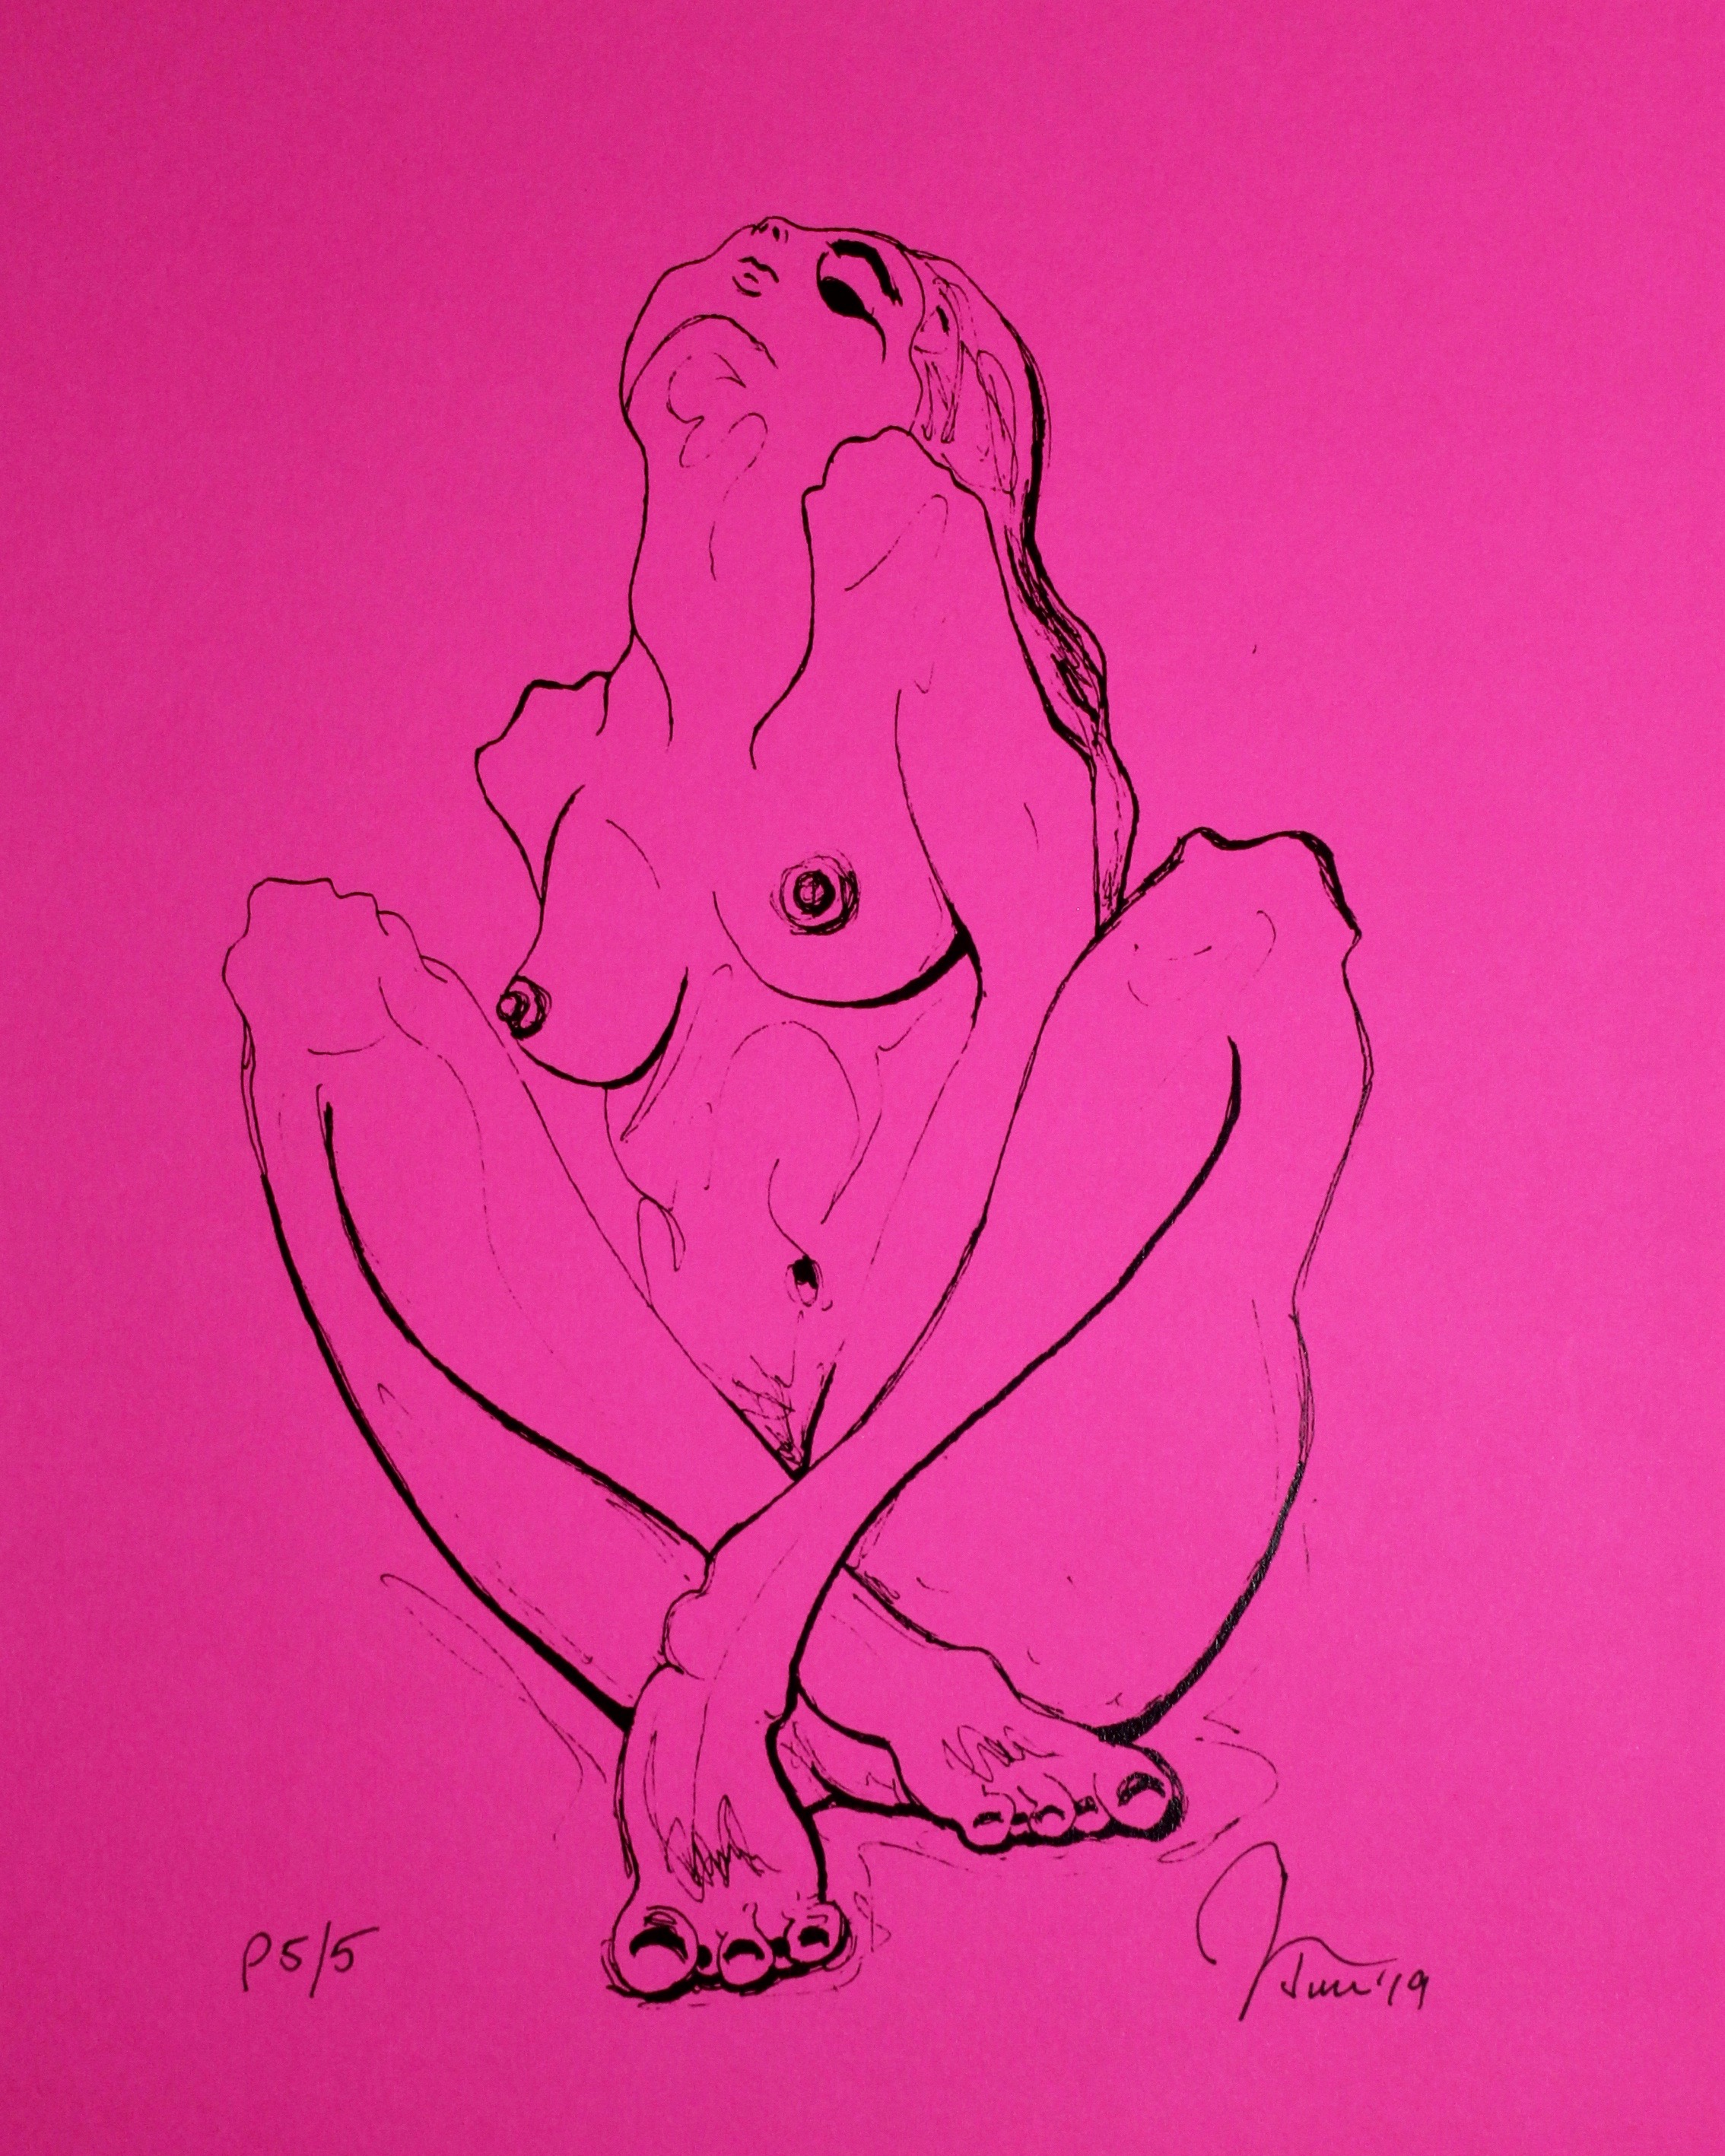 Upward Energy Print Pink Hot For Sale